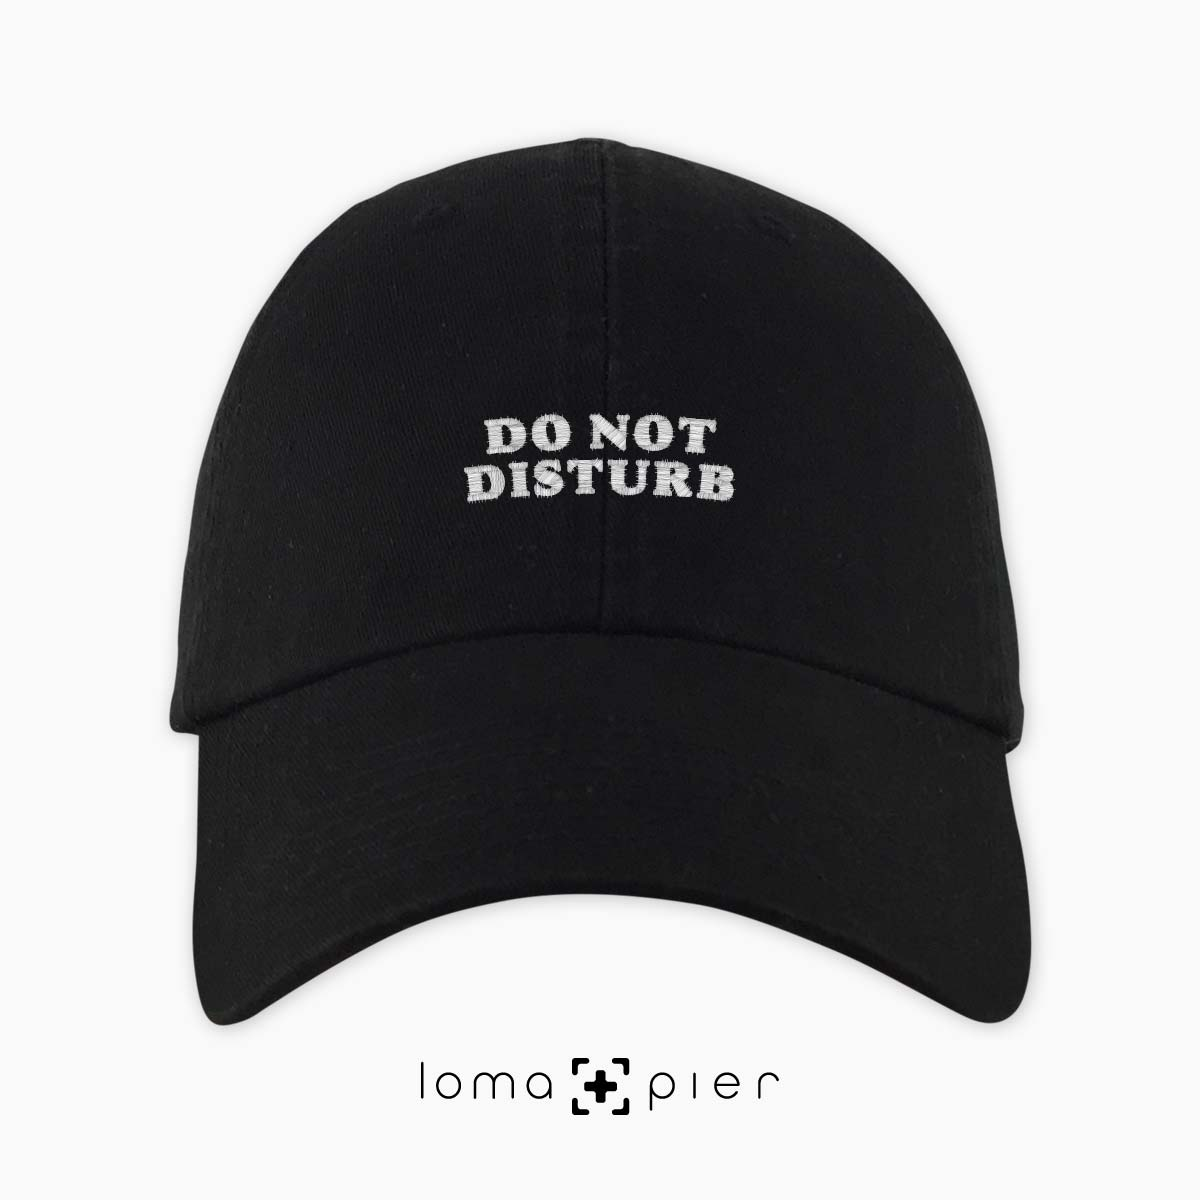 DO NOT DISTURB dad hat by loma+pier hat store